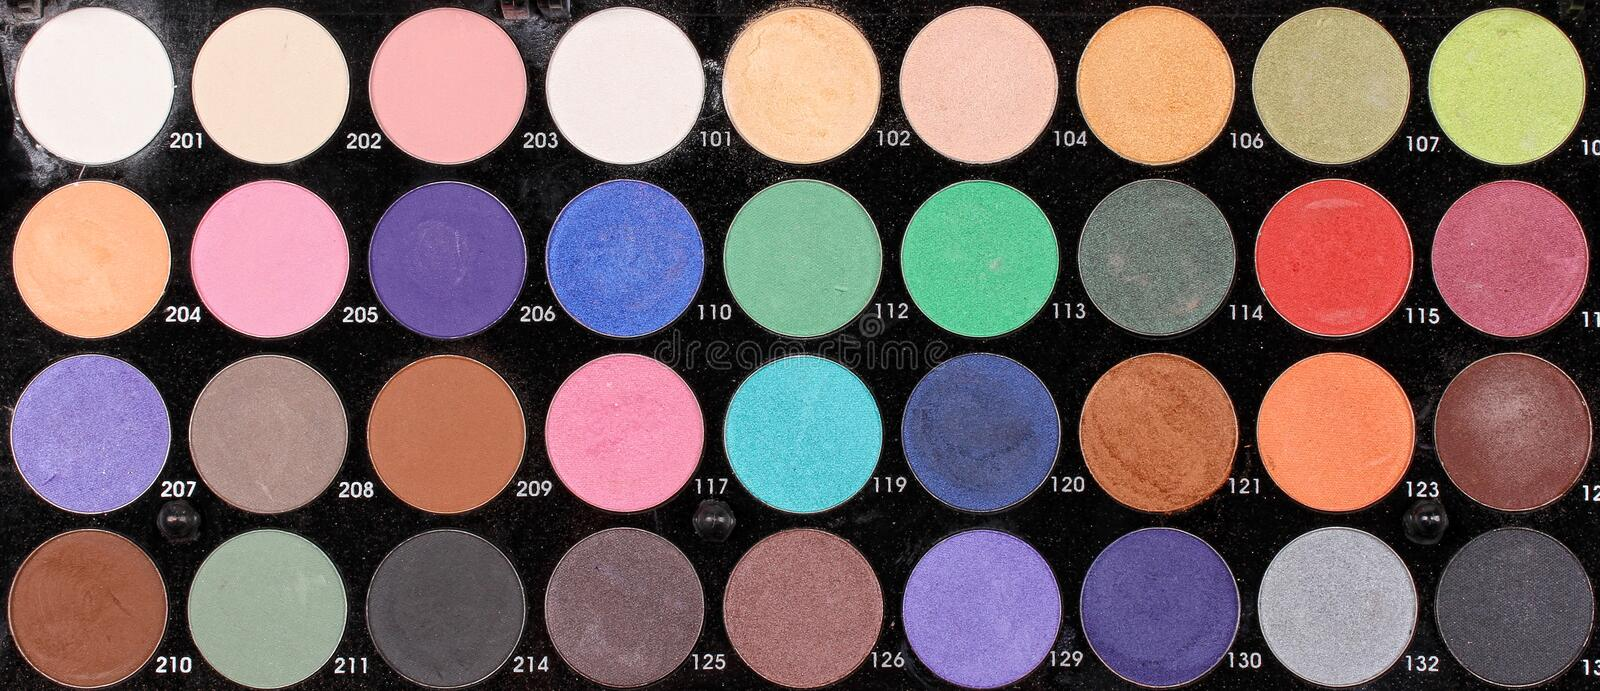 Download Make up palette stock image. Image of eyeshadows, many - 28658127